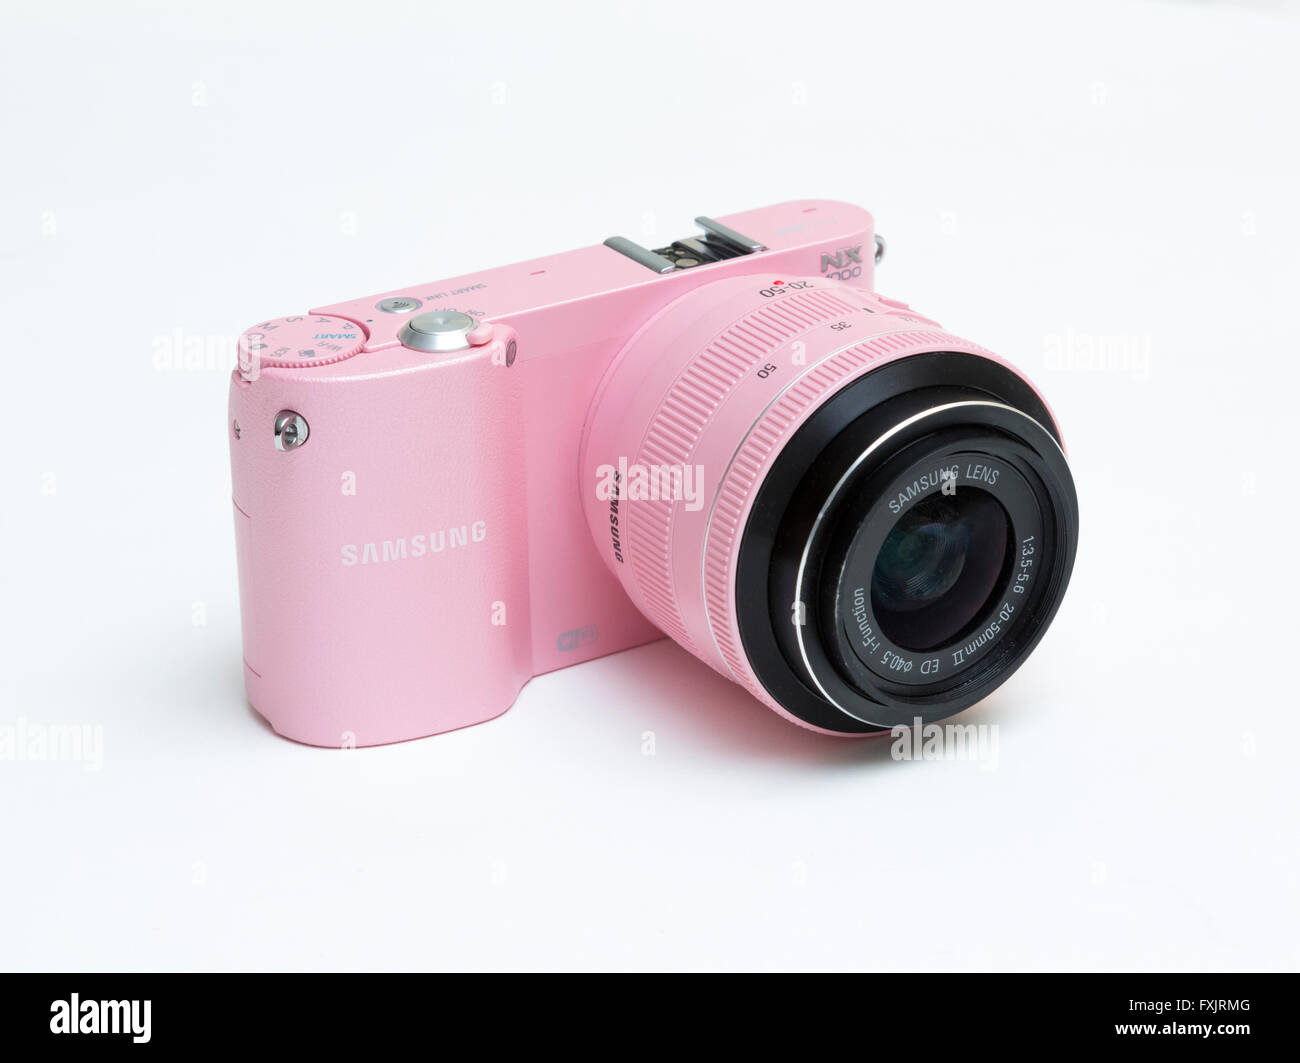 pink Samsung digital camera - Stock Image